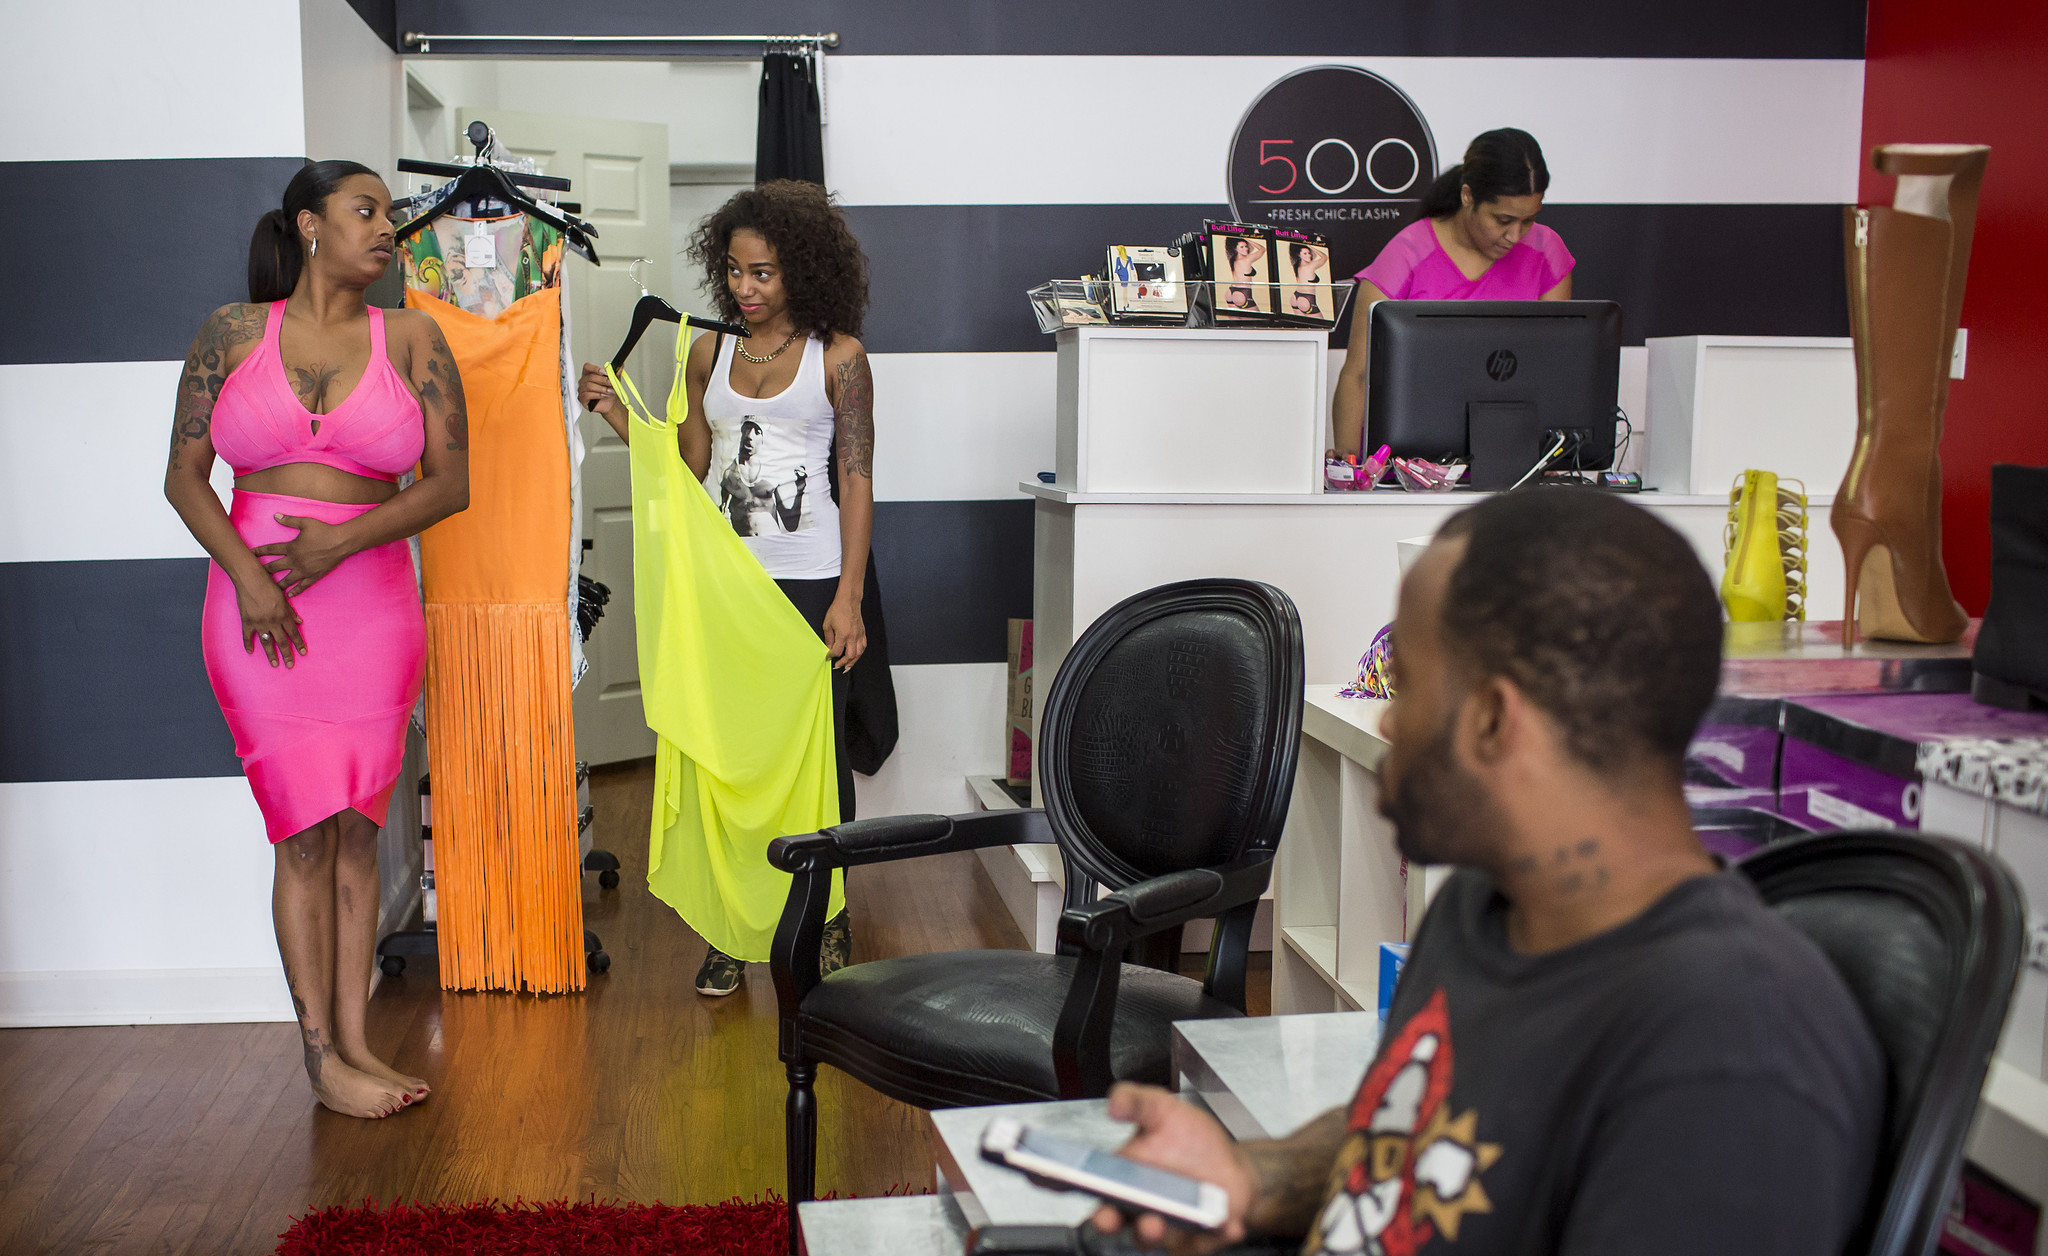 558d8ee84f Marlene Sheppard browsed the racks Wednesday at Shop 500 Boutique before  her birthday party